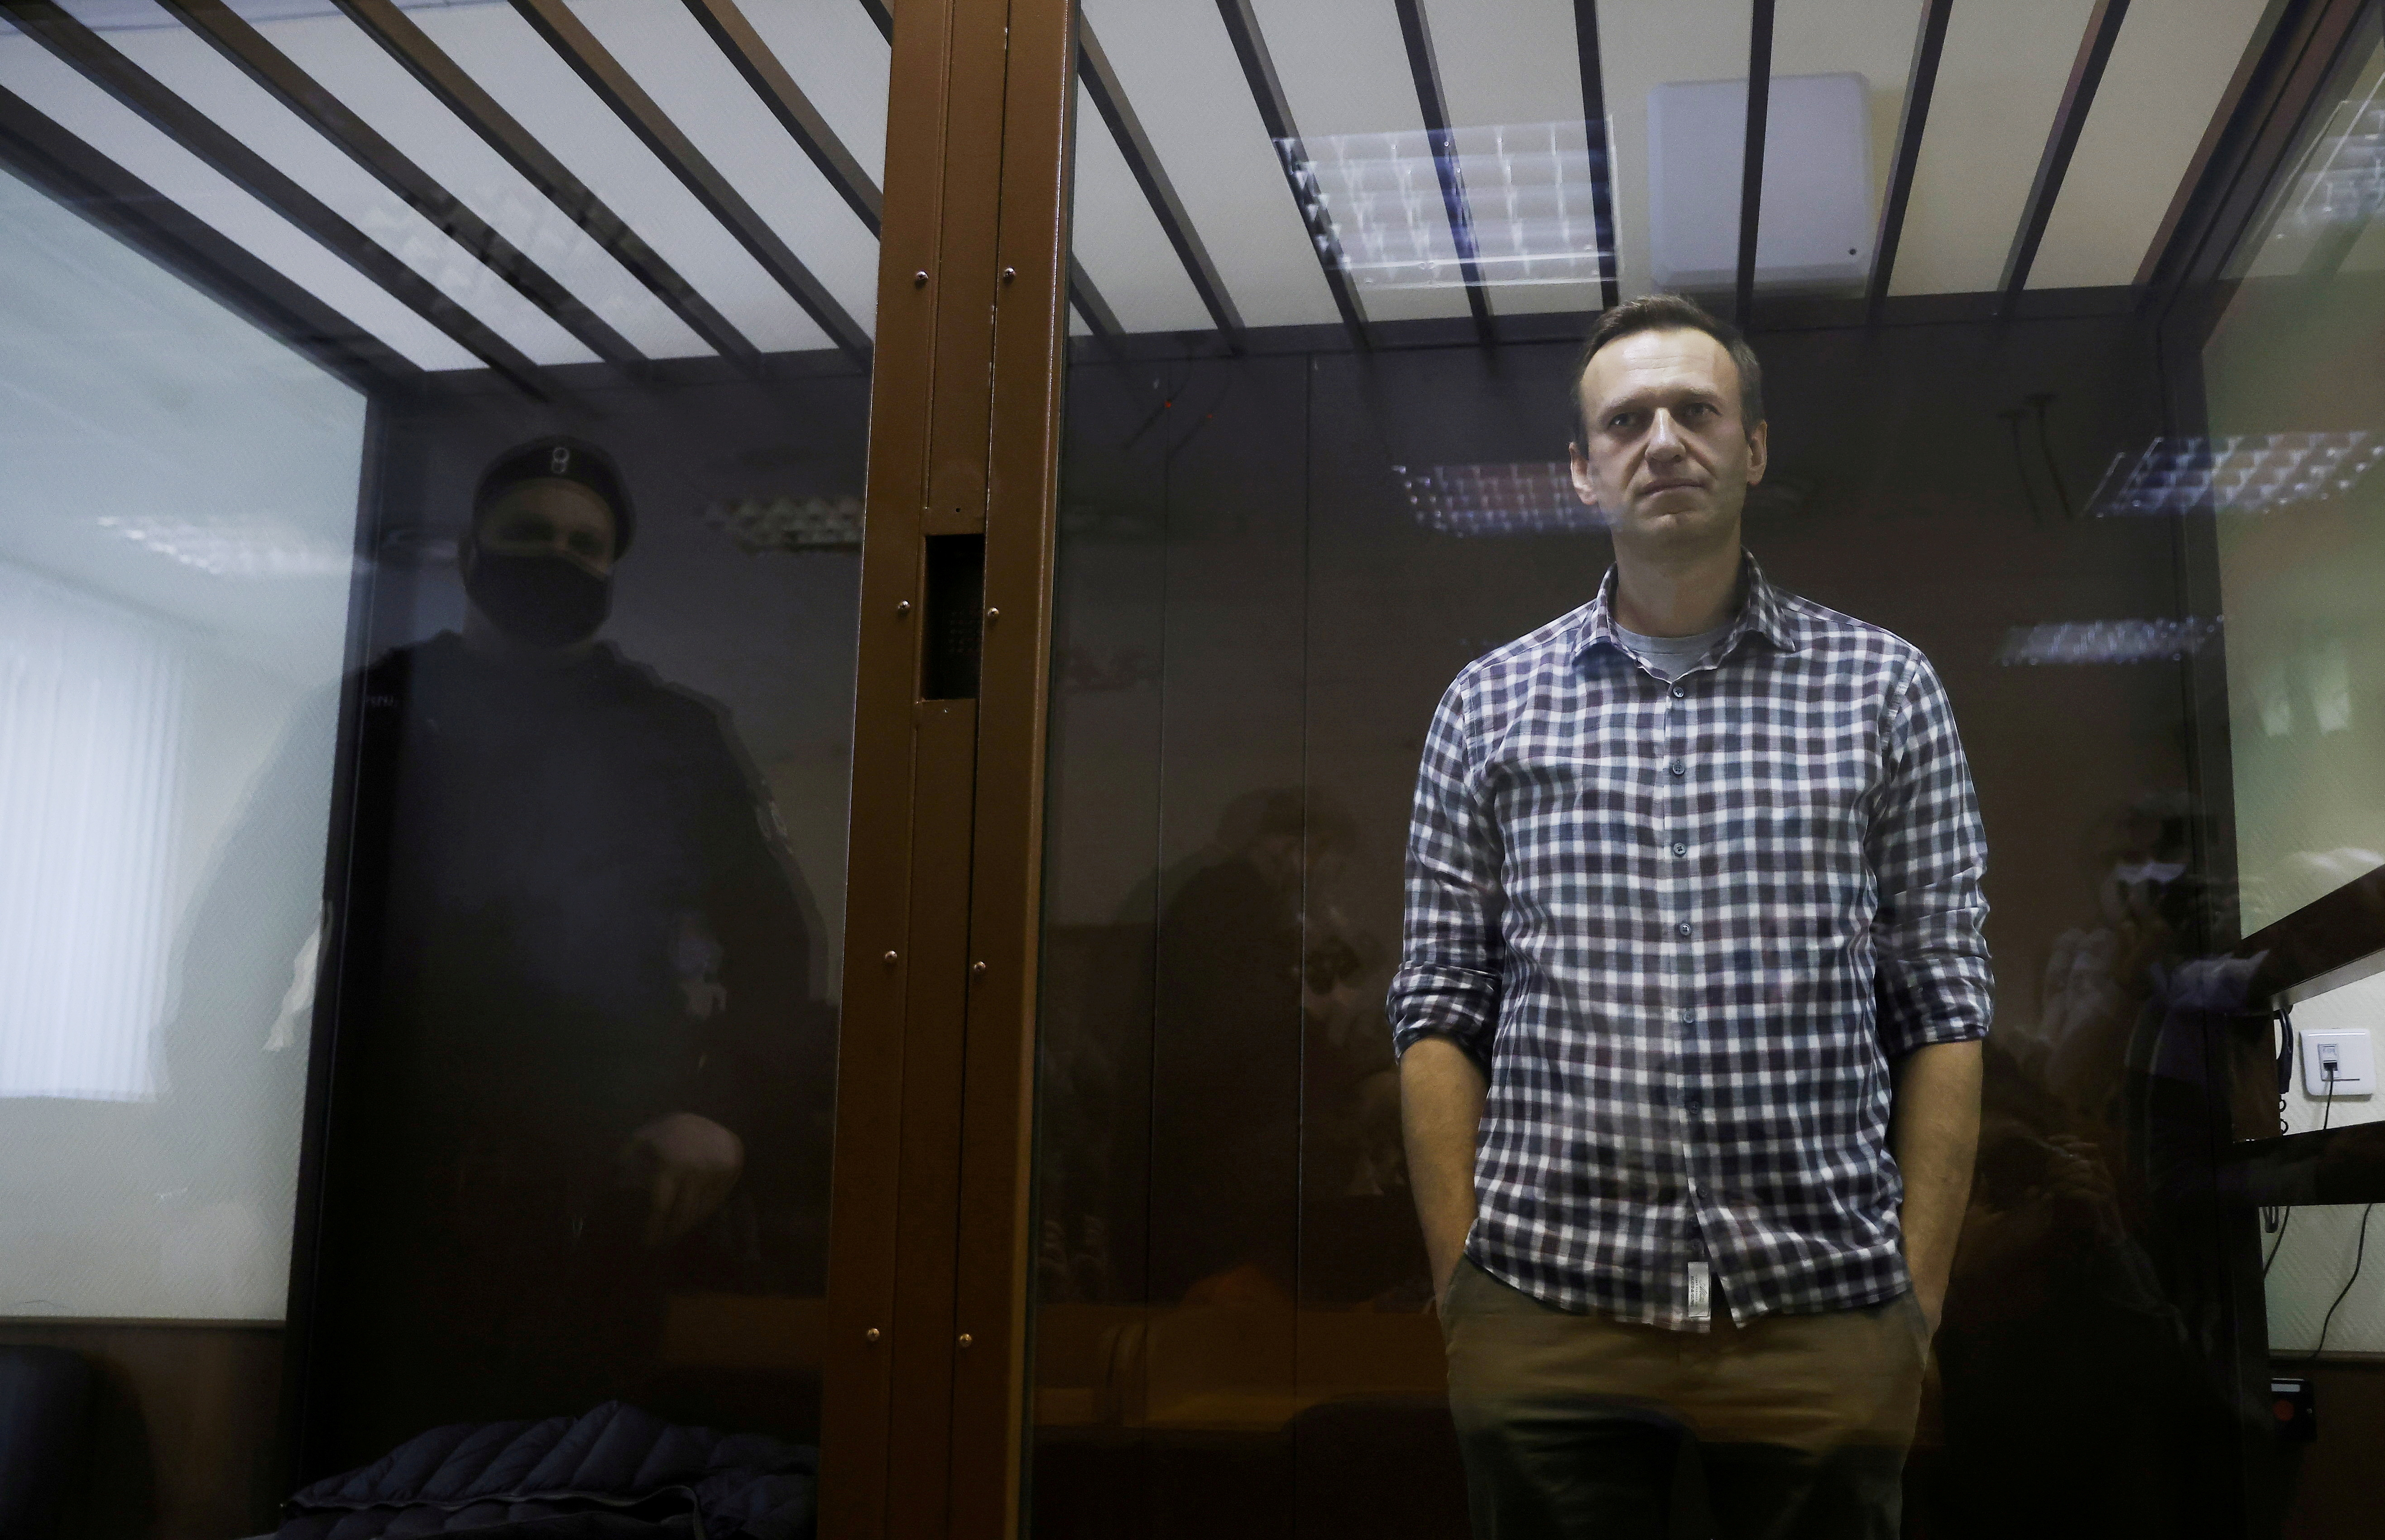 Russian opposition leader Alexei Navalny attends a hearing to consider an appeal against an earlier court decision to change his suspended sentence to a real prison term, in Moscow, Russia February 20, 2021. REUTERS/Maxim Shemetov